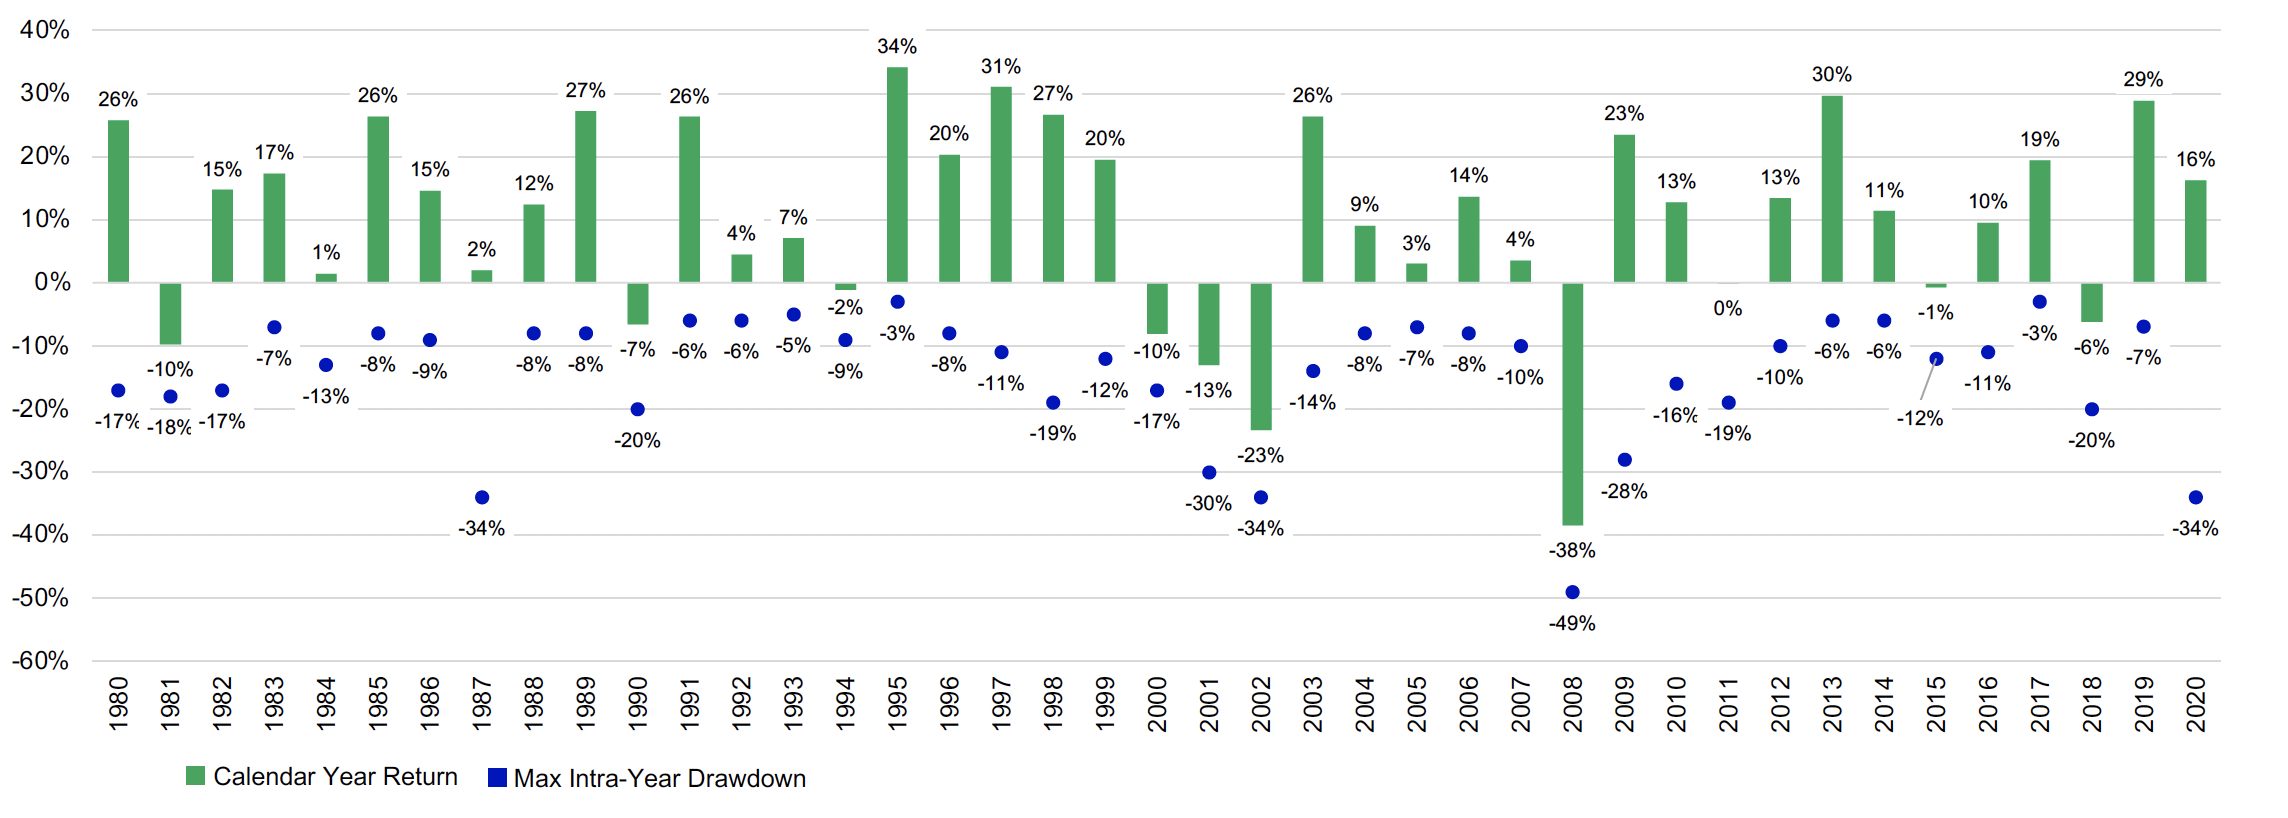 This bar chart shows calendar year returns for the S&P 500 from 1980 to 2020. It also shows the maximum drawdown in each calendar year.